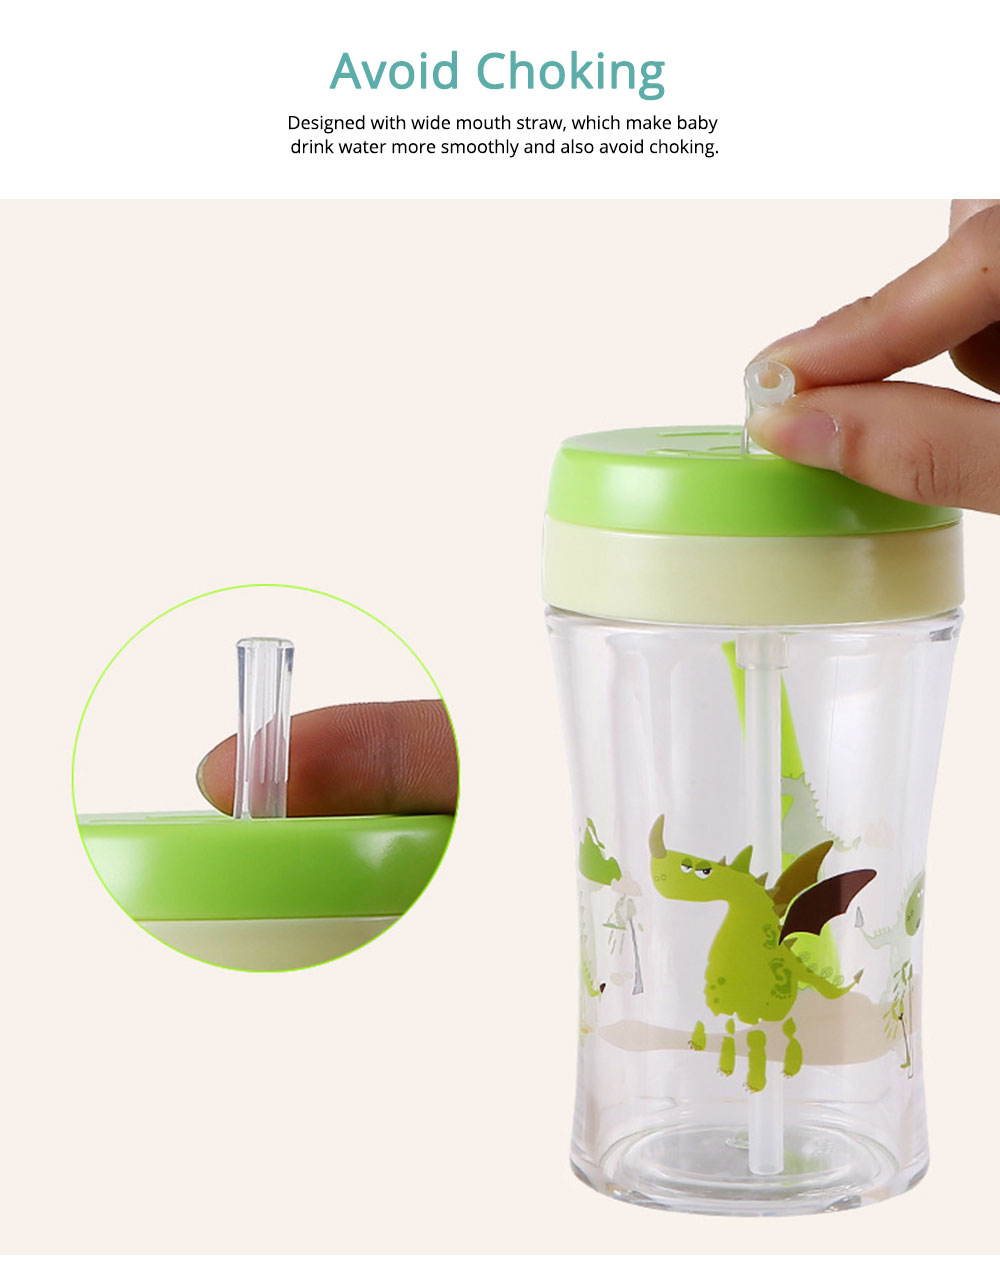 Safe Material Bottle with Straw Leak-proof Glass Choke-resistance for Baby Learning Drink Cup 4